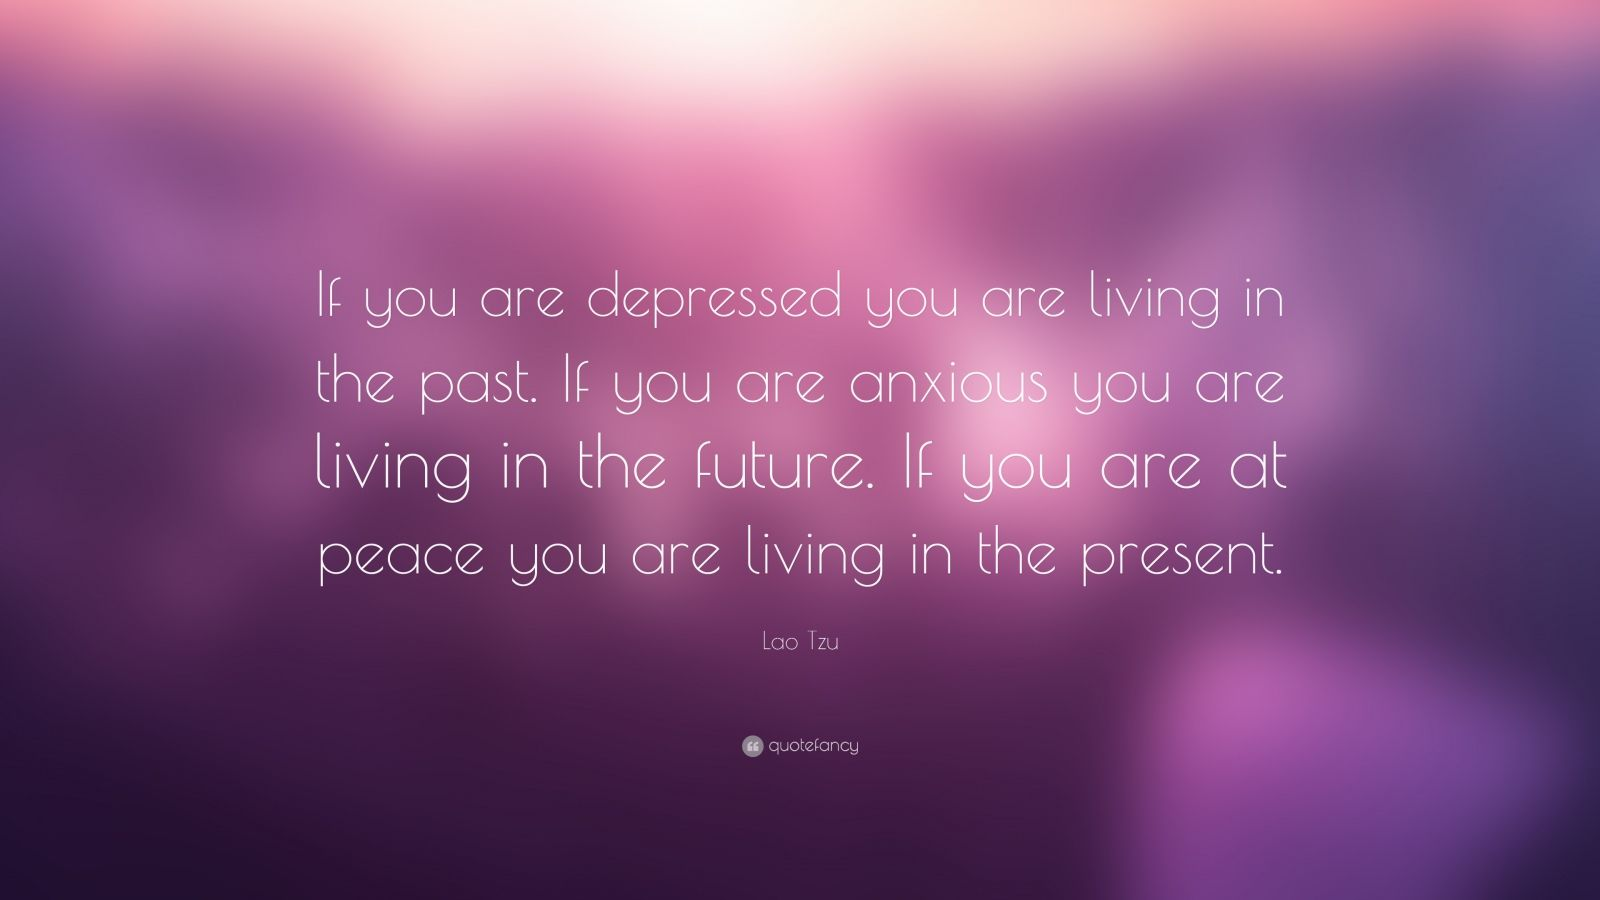 """Lao Tzu Quote: """"If you are depressed you are living in the past.  If you are anxious you are living in the future.  If you are at peace you are living in the present."""""""